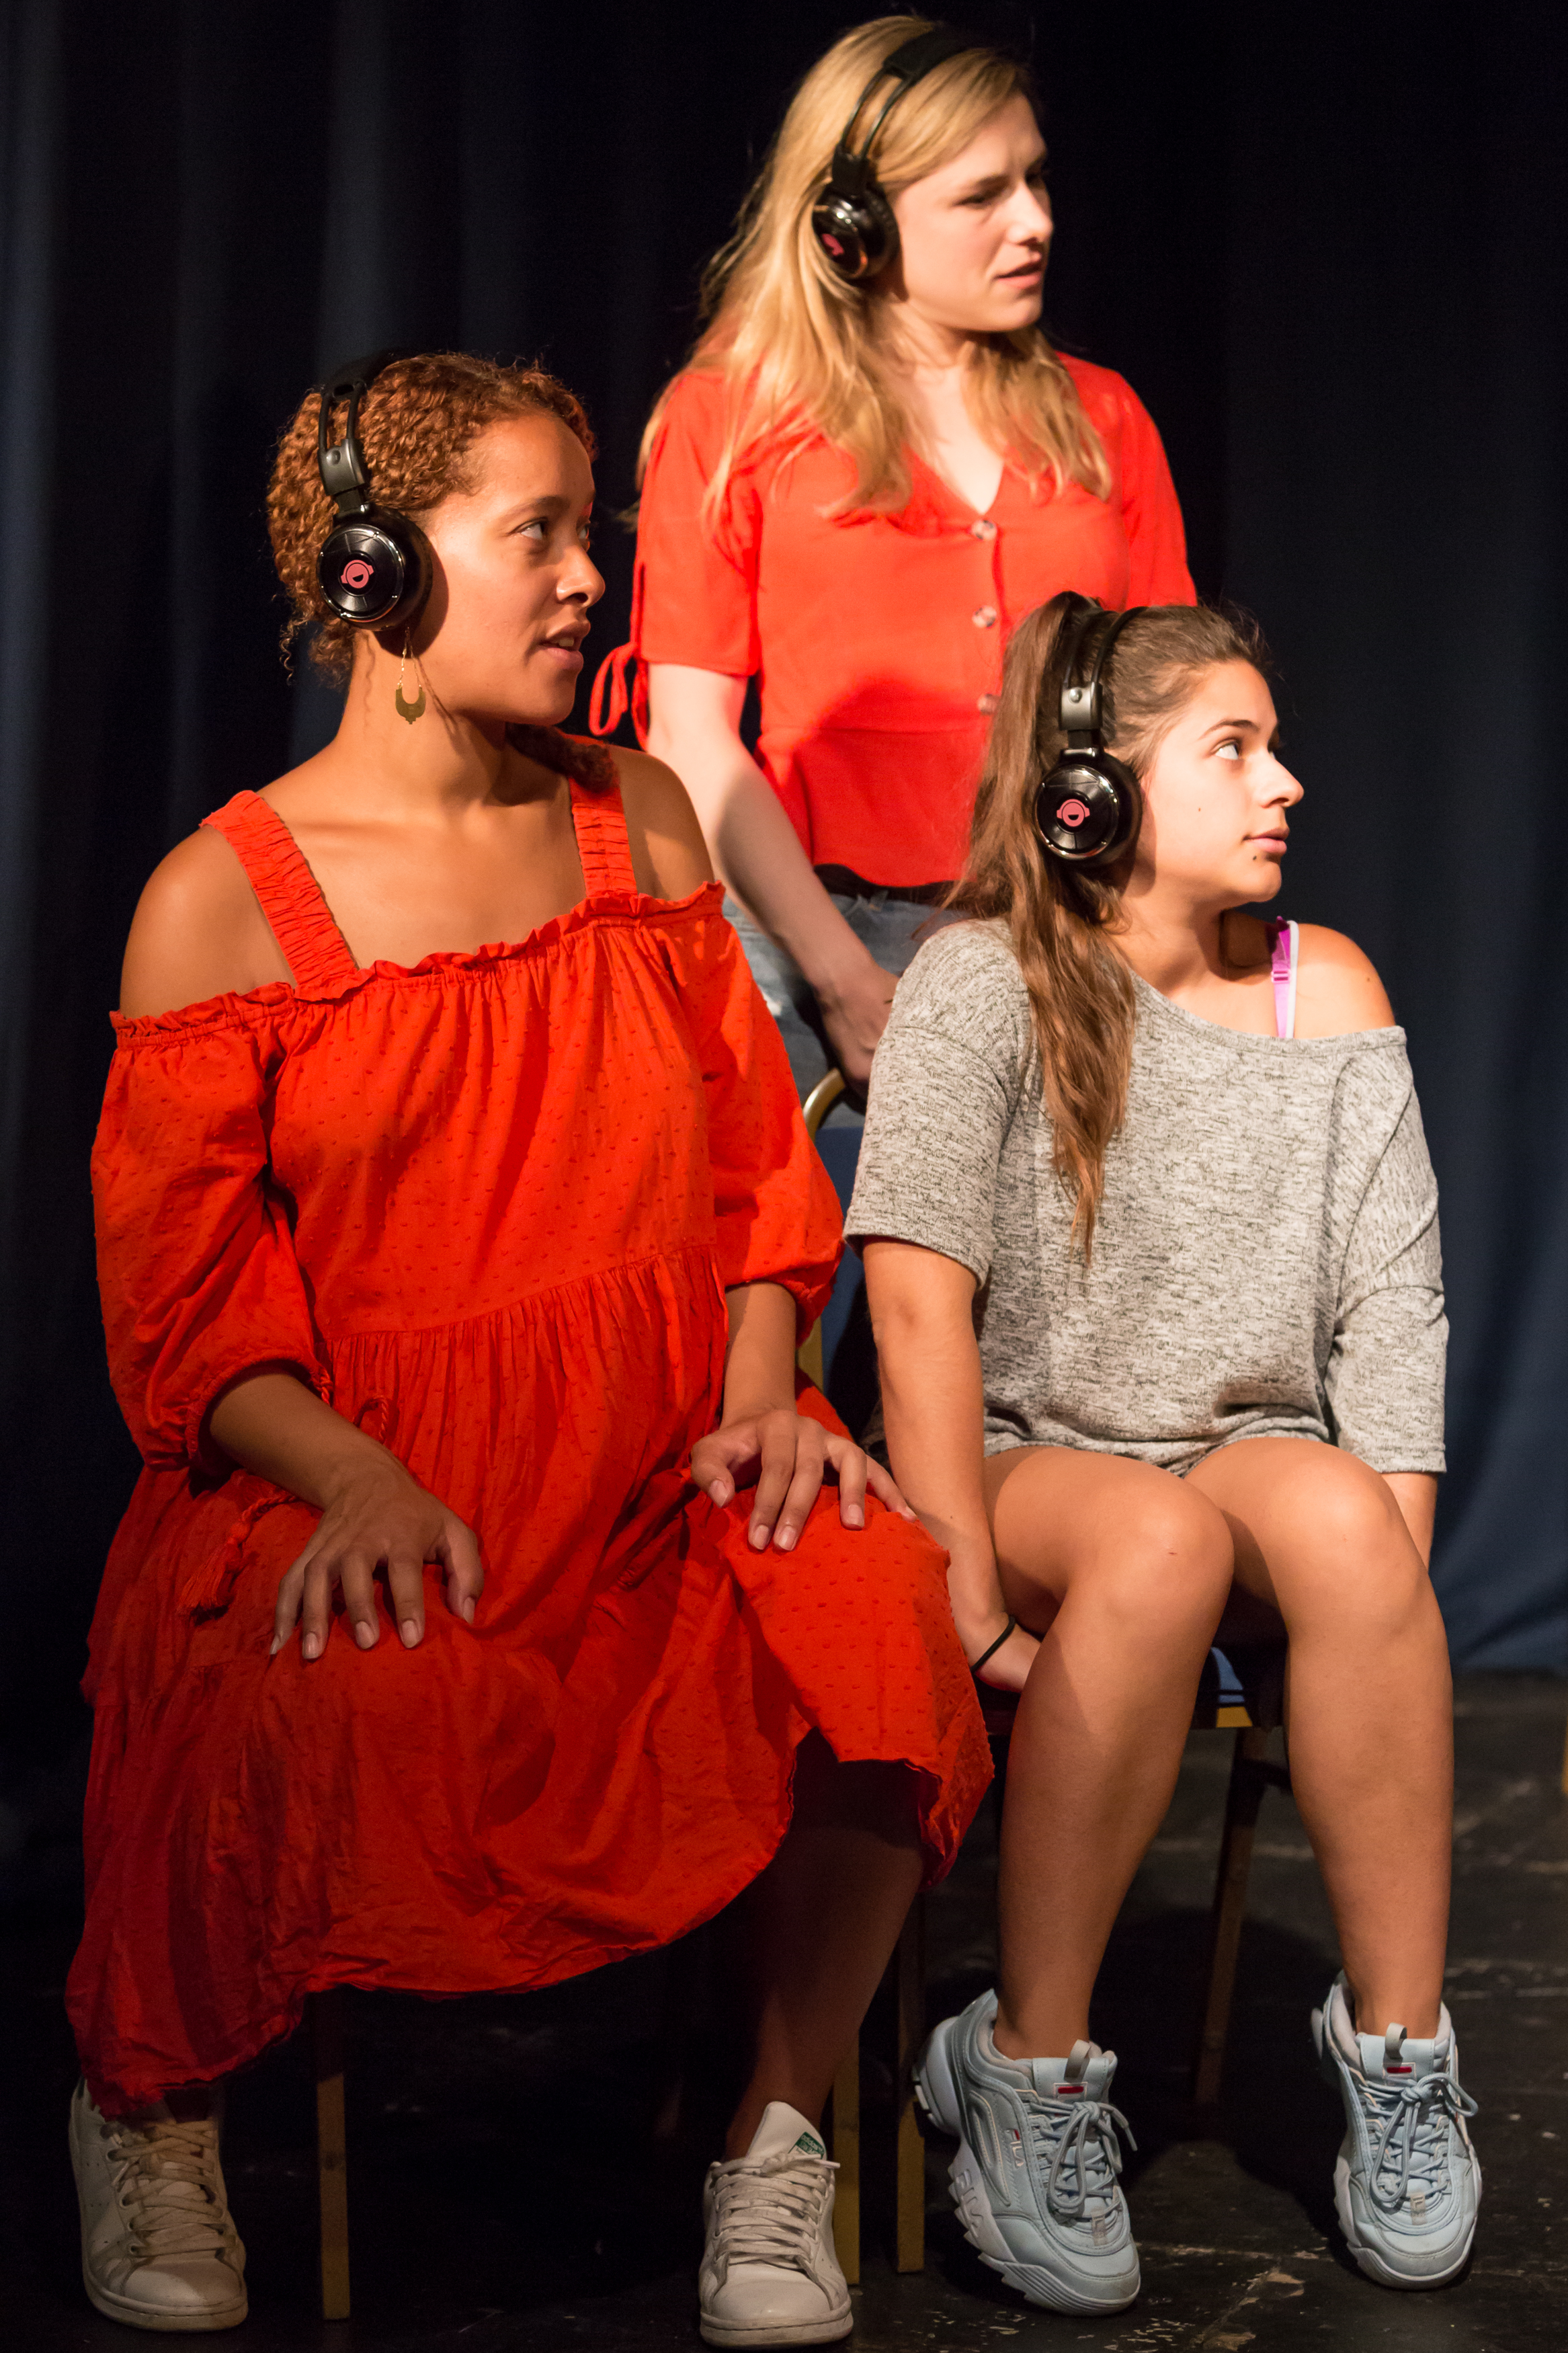 Longsight Theatre: Eloise Joseph, Nyla Levy and Alix Wilton Regan in 'Young Hot Bloods' at From The Forest Festival, 2018